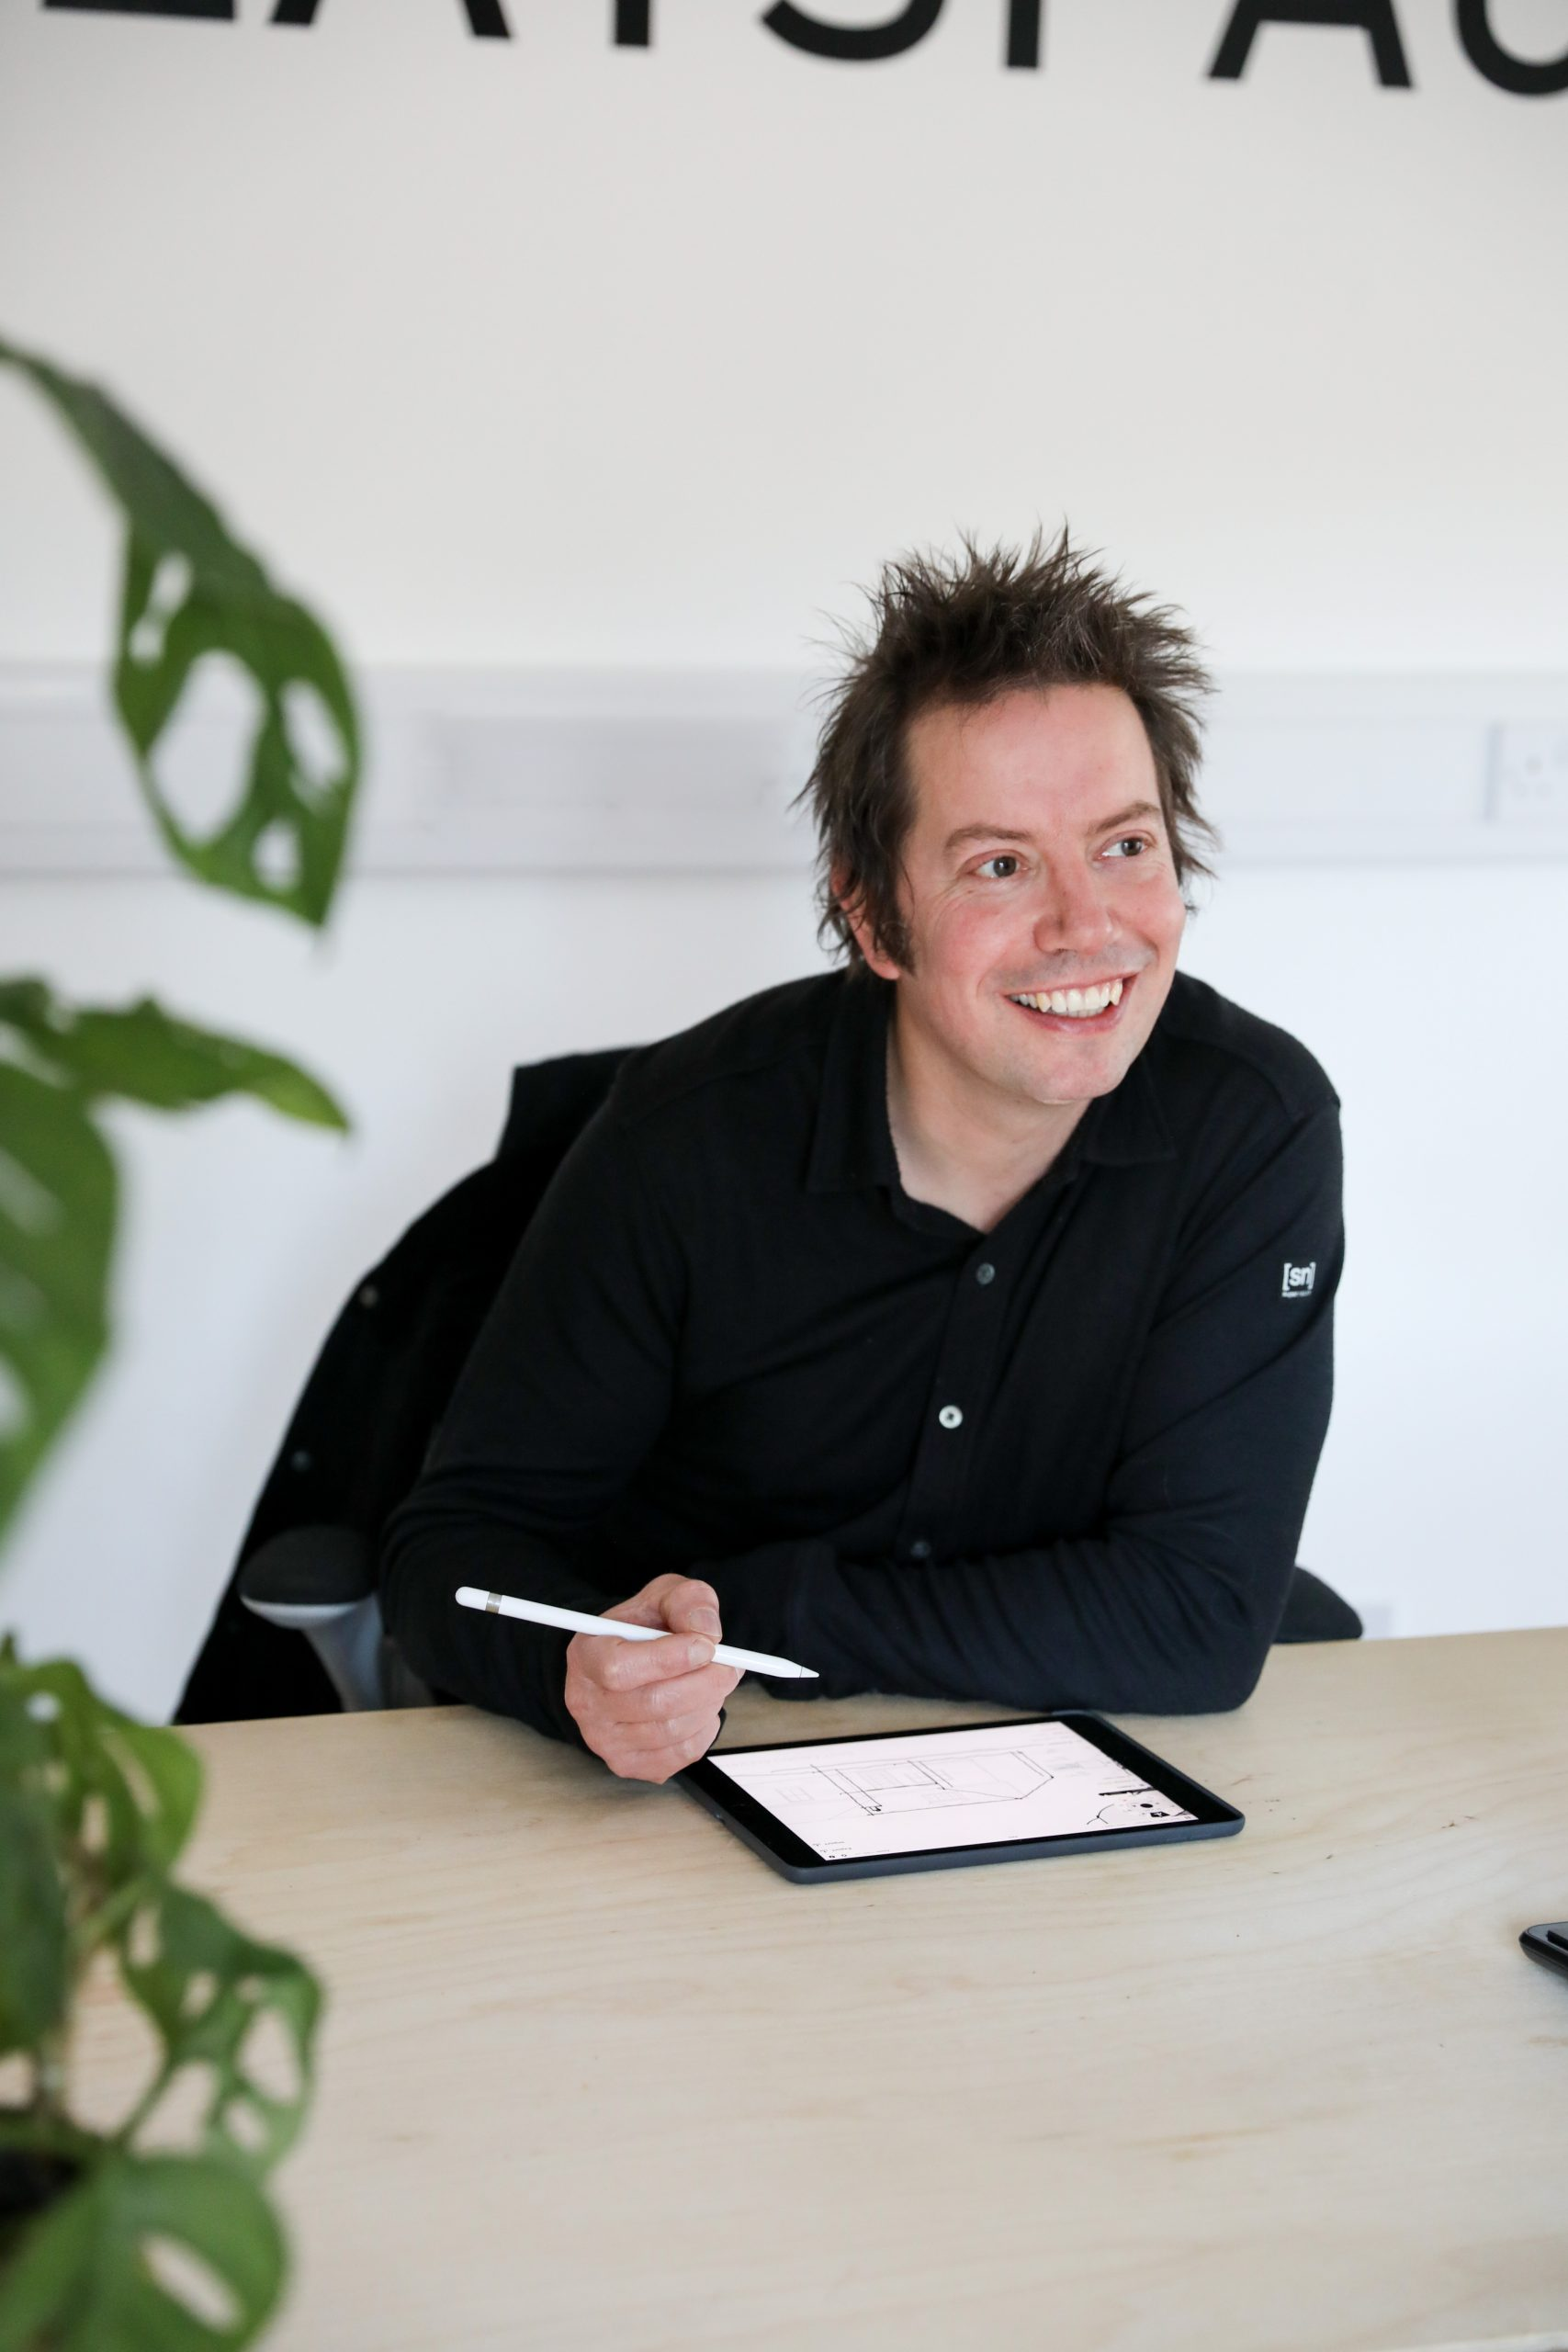 Joe Marshall Architectural Assistant